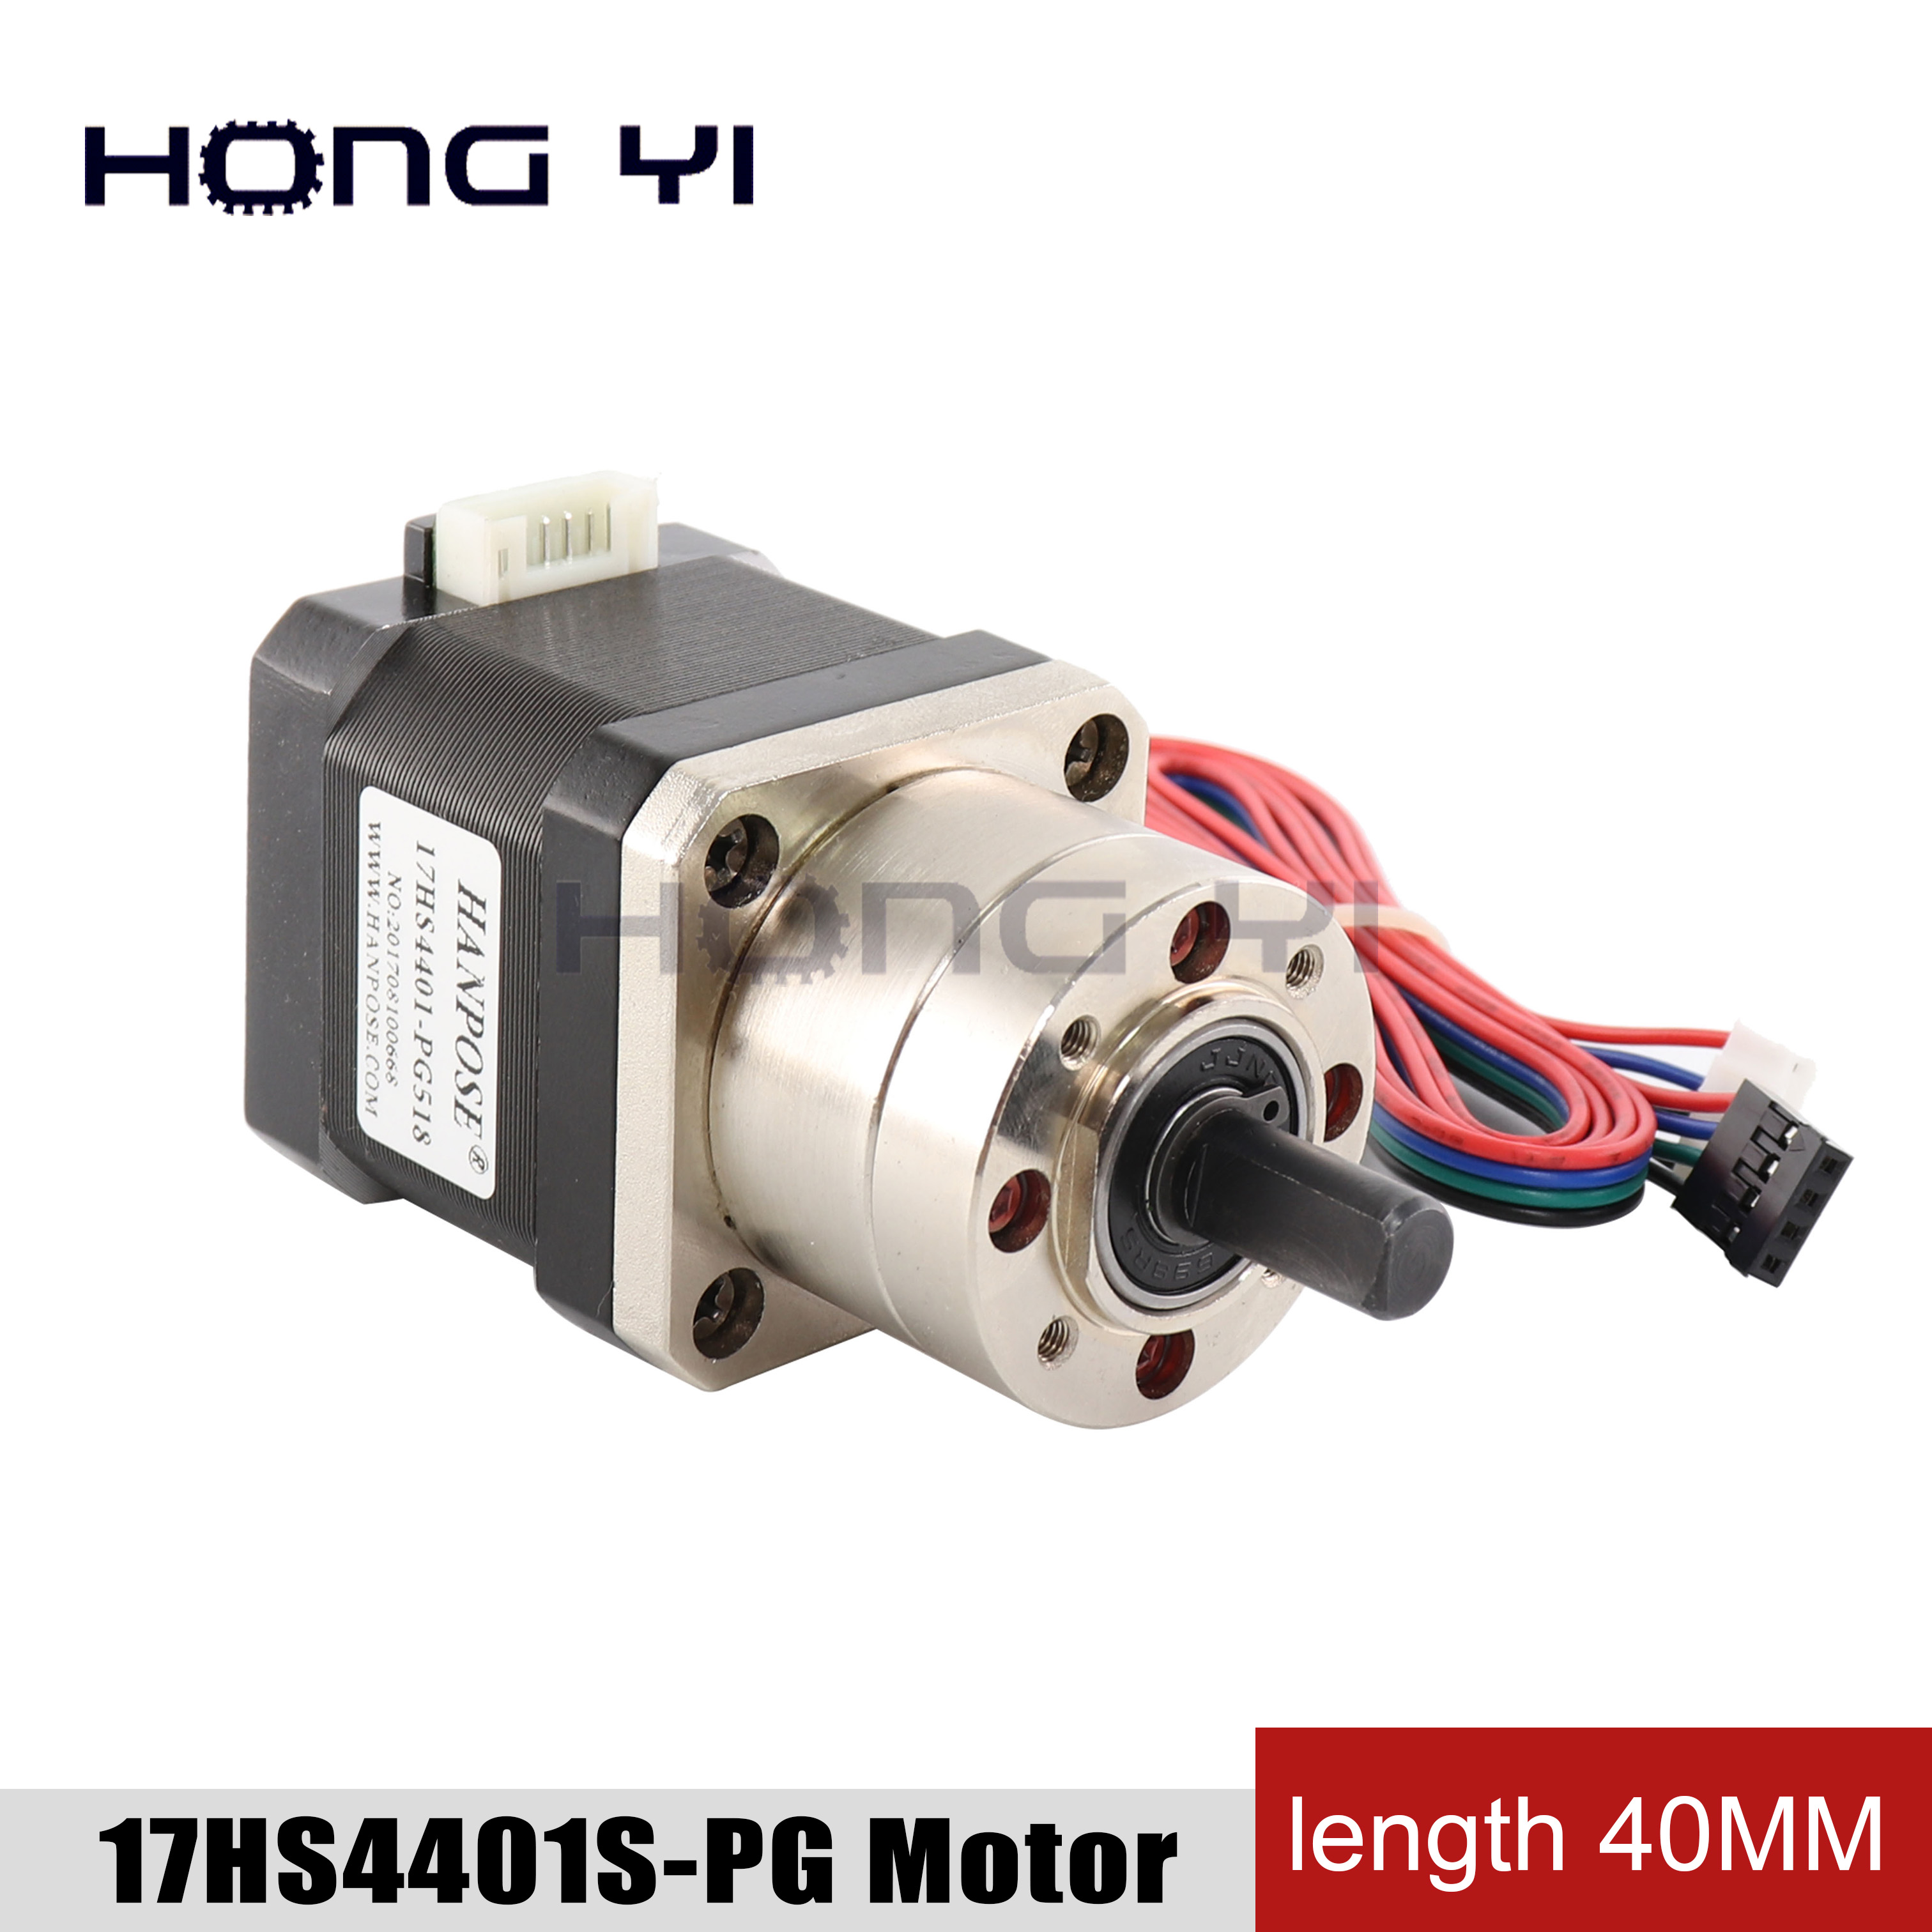 Free shipping 4-lead <font><b>Nema17</b></font> Stepper Motor 17HS4401S-PG5.18 <font><b>Gear</b></font> Stepper Motor Ratio Planetary Gearbox Nema 17 Step Motor image